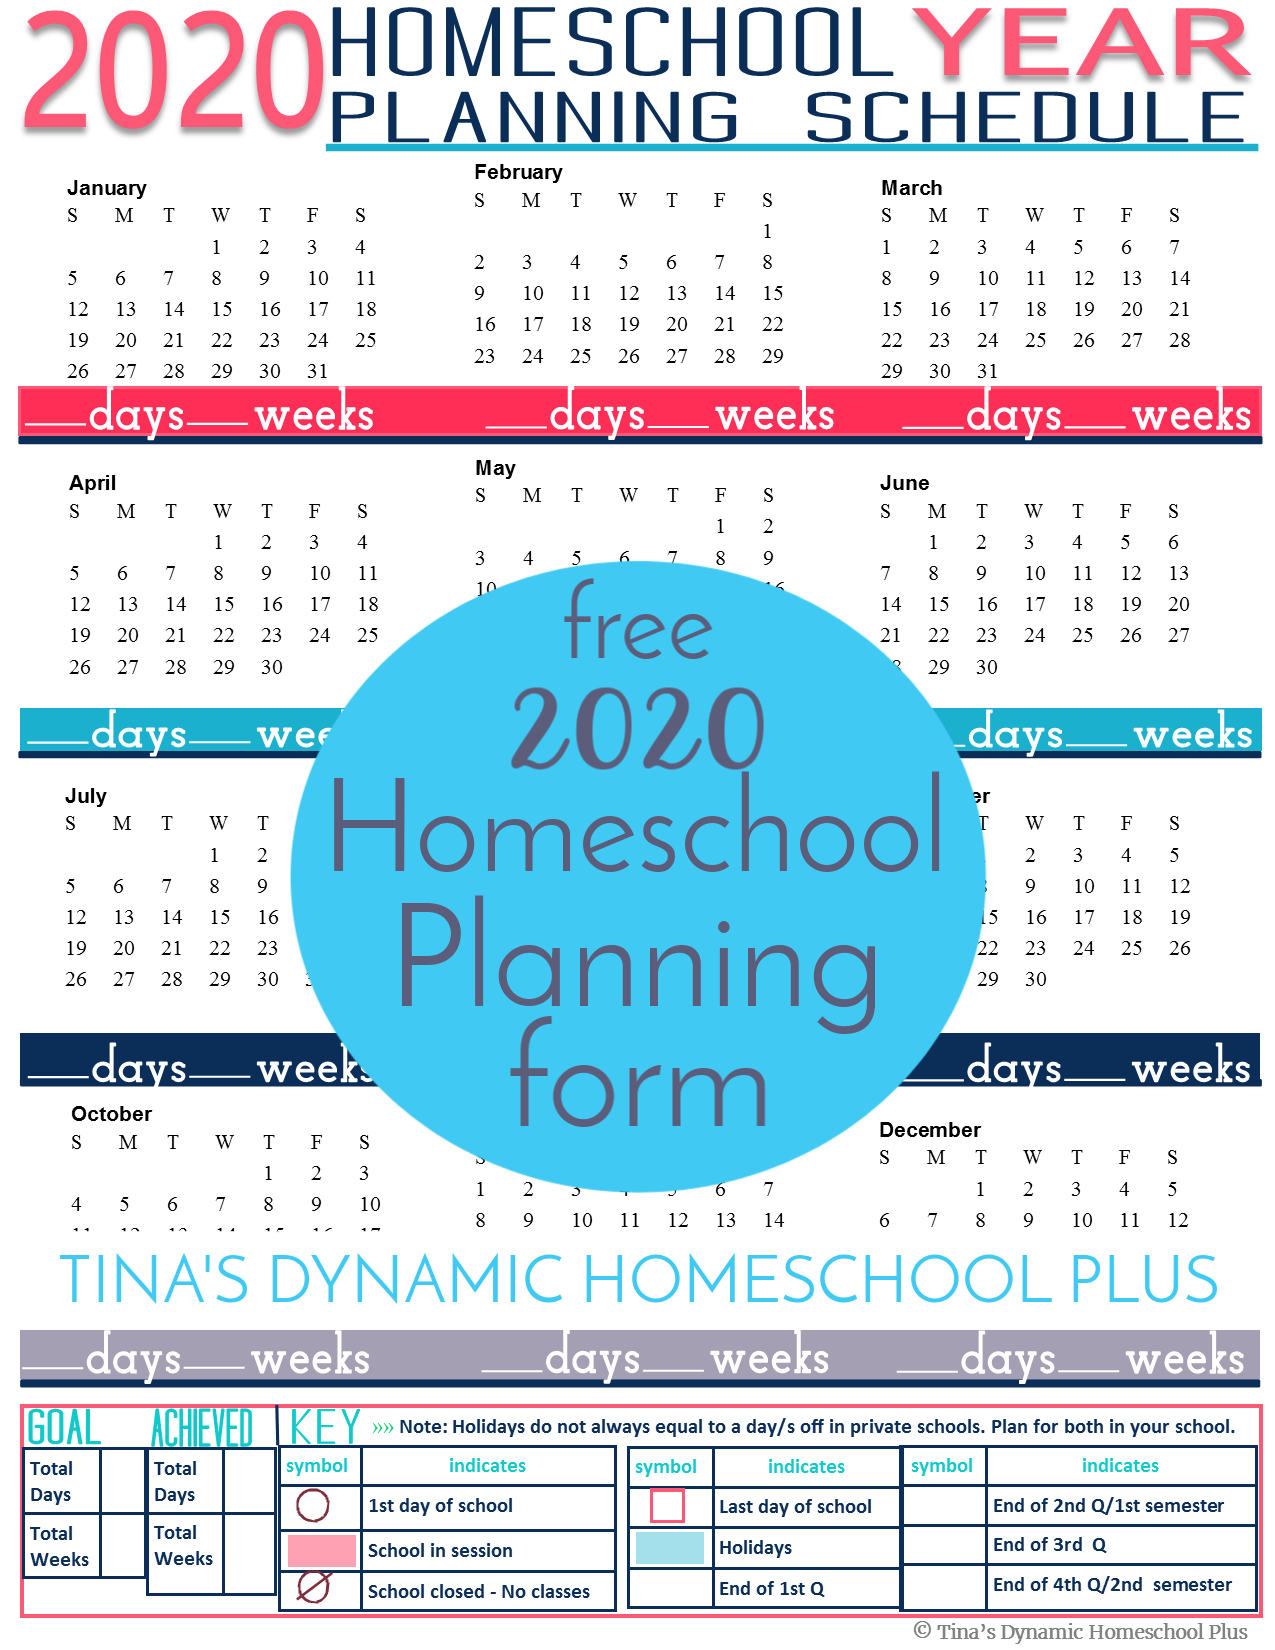 If you plan your homeschool by the physical year, grab this 2020 Homeschool Planning form. CLICK HERE to grab this AWESOME and FREE form!